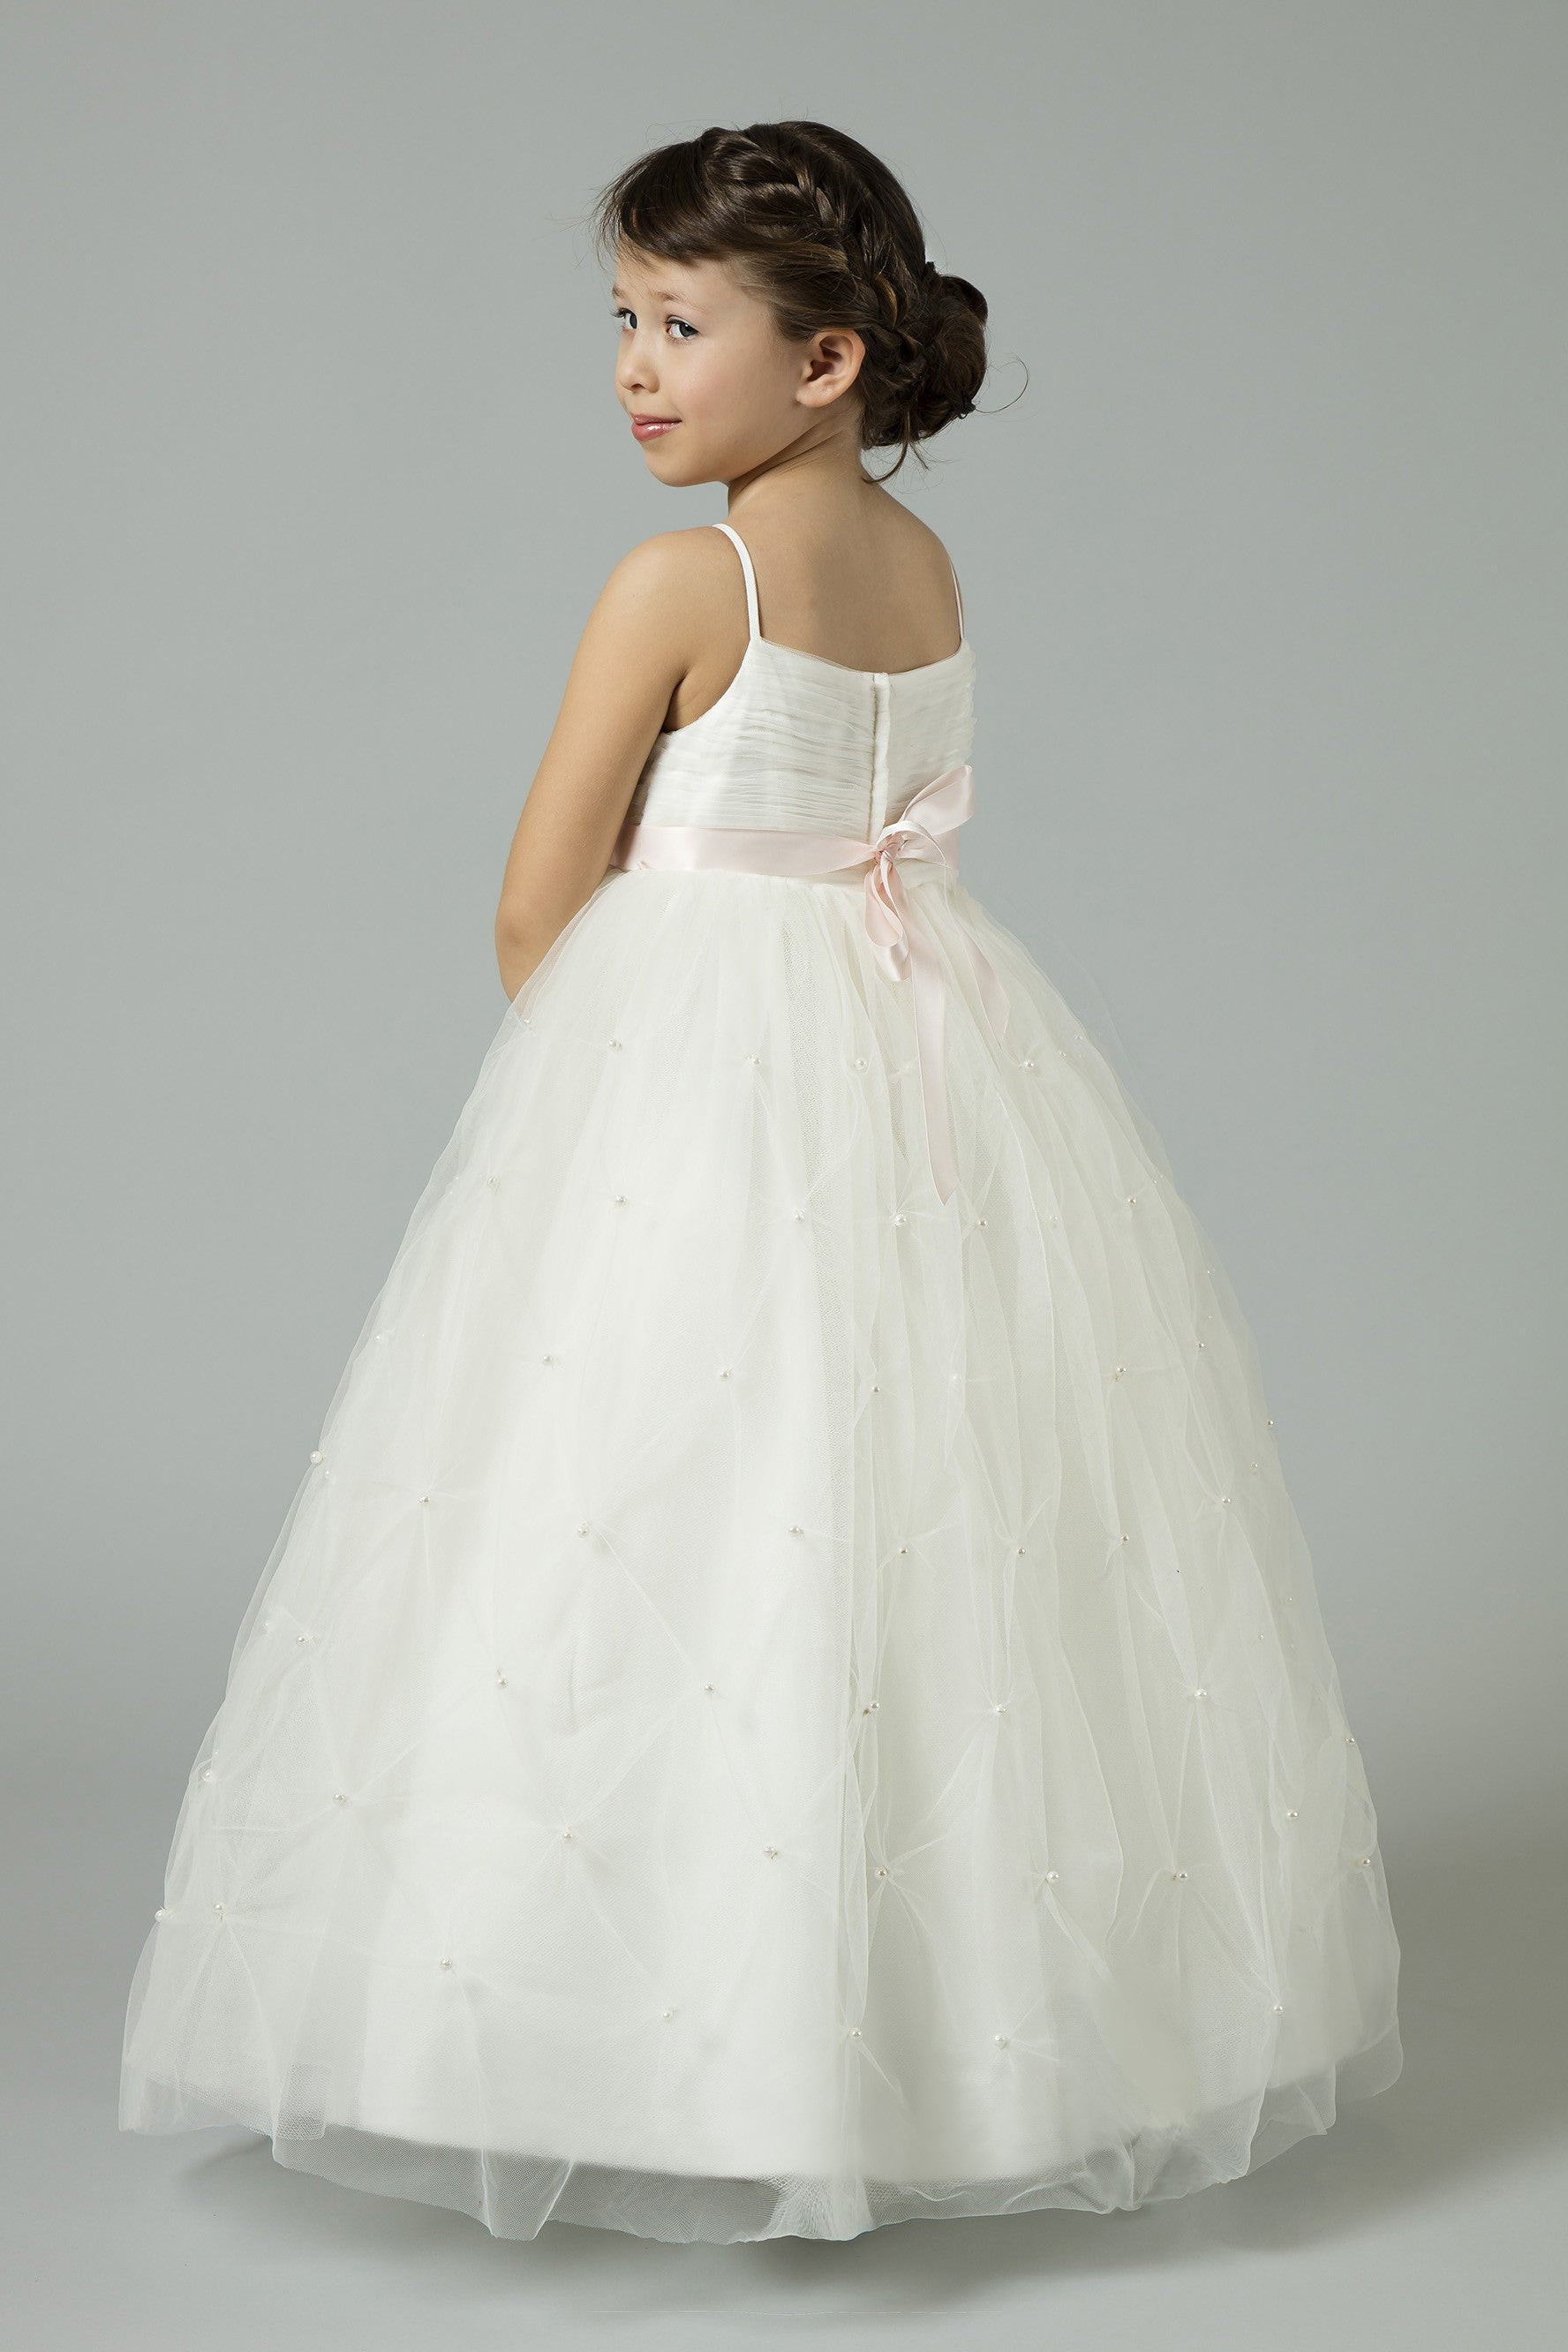 Tulle Flower Girl Dress with Pearl Pick-Ups-WG1369